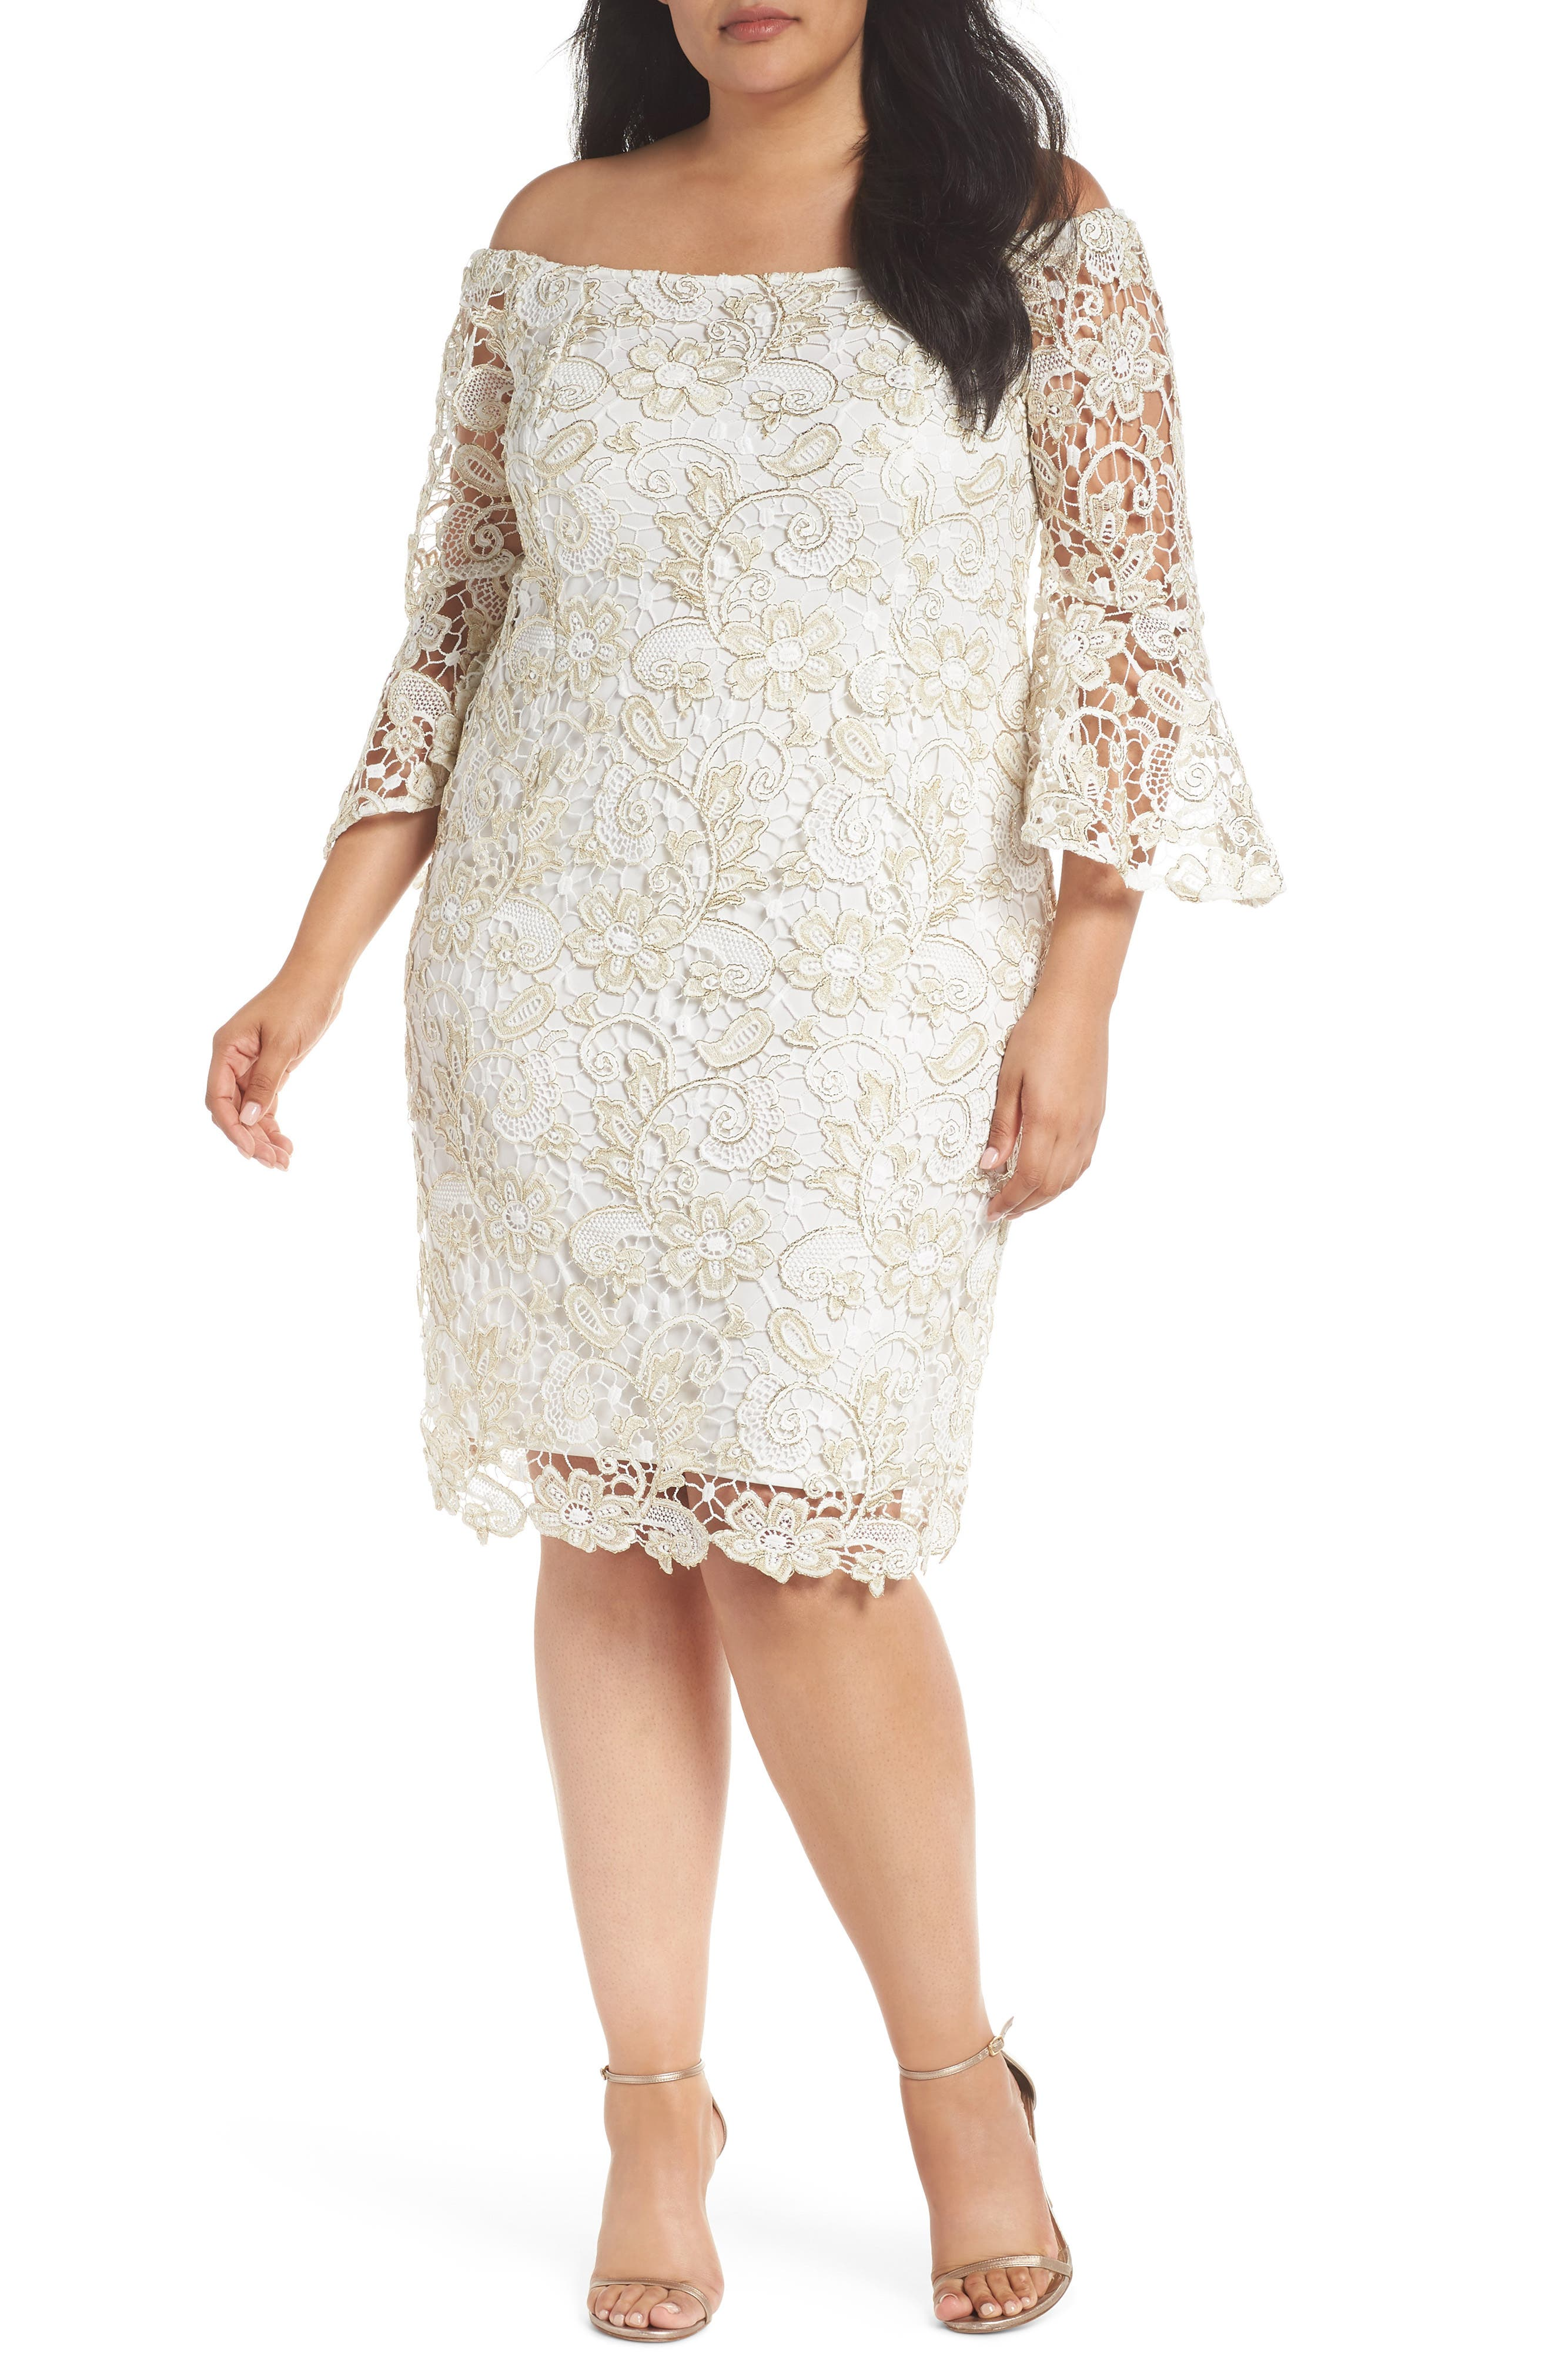 Alternate Image 1 Selected - Marina Lace Off the Shoulder Bell Sleeve Dress (Plus Size)